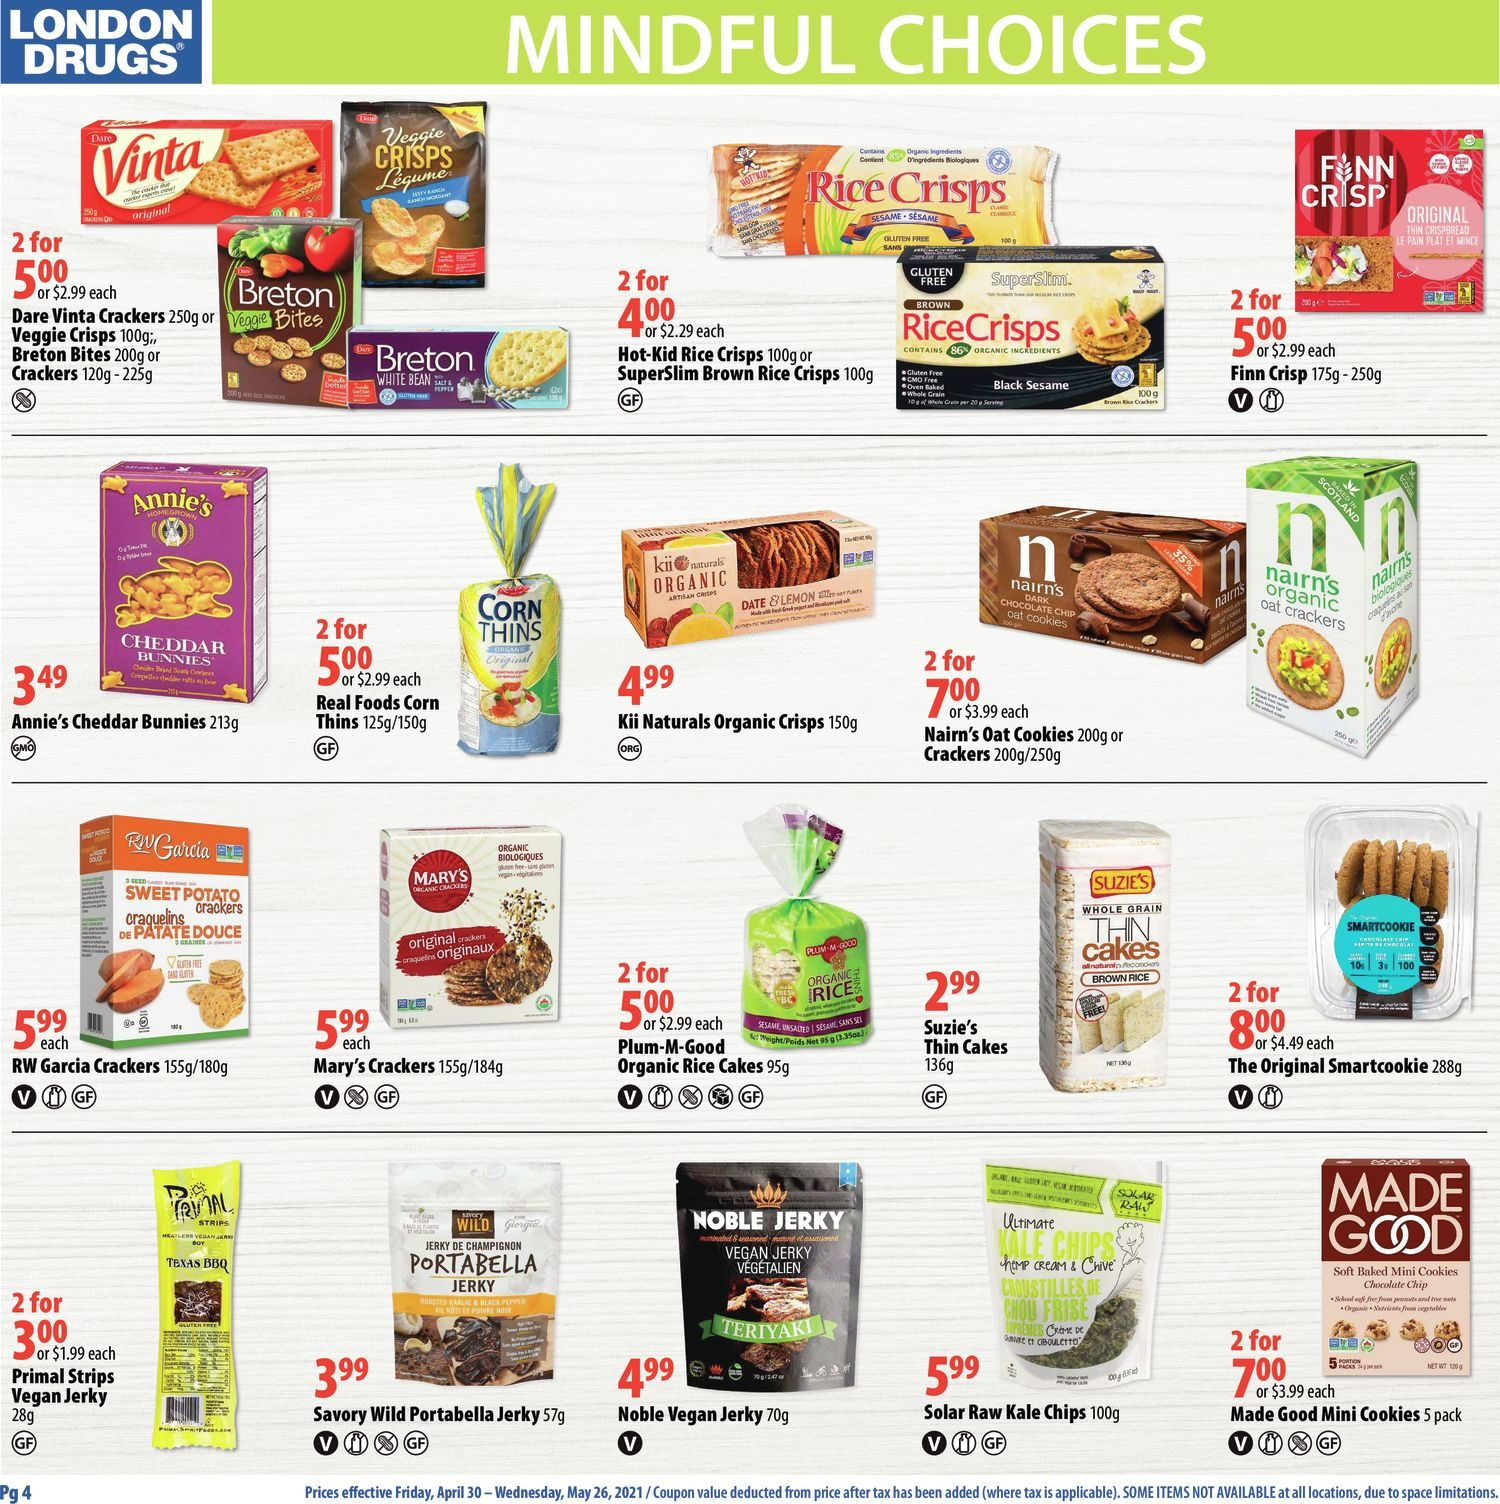 London Drugs - Mindful Choices - Choices To Support Your Lifestyle - Page 4